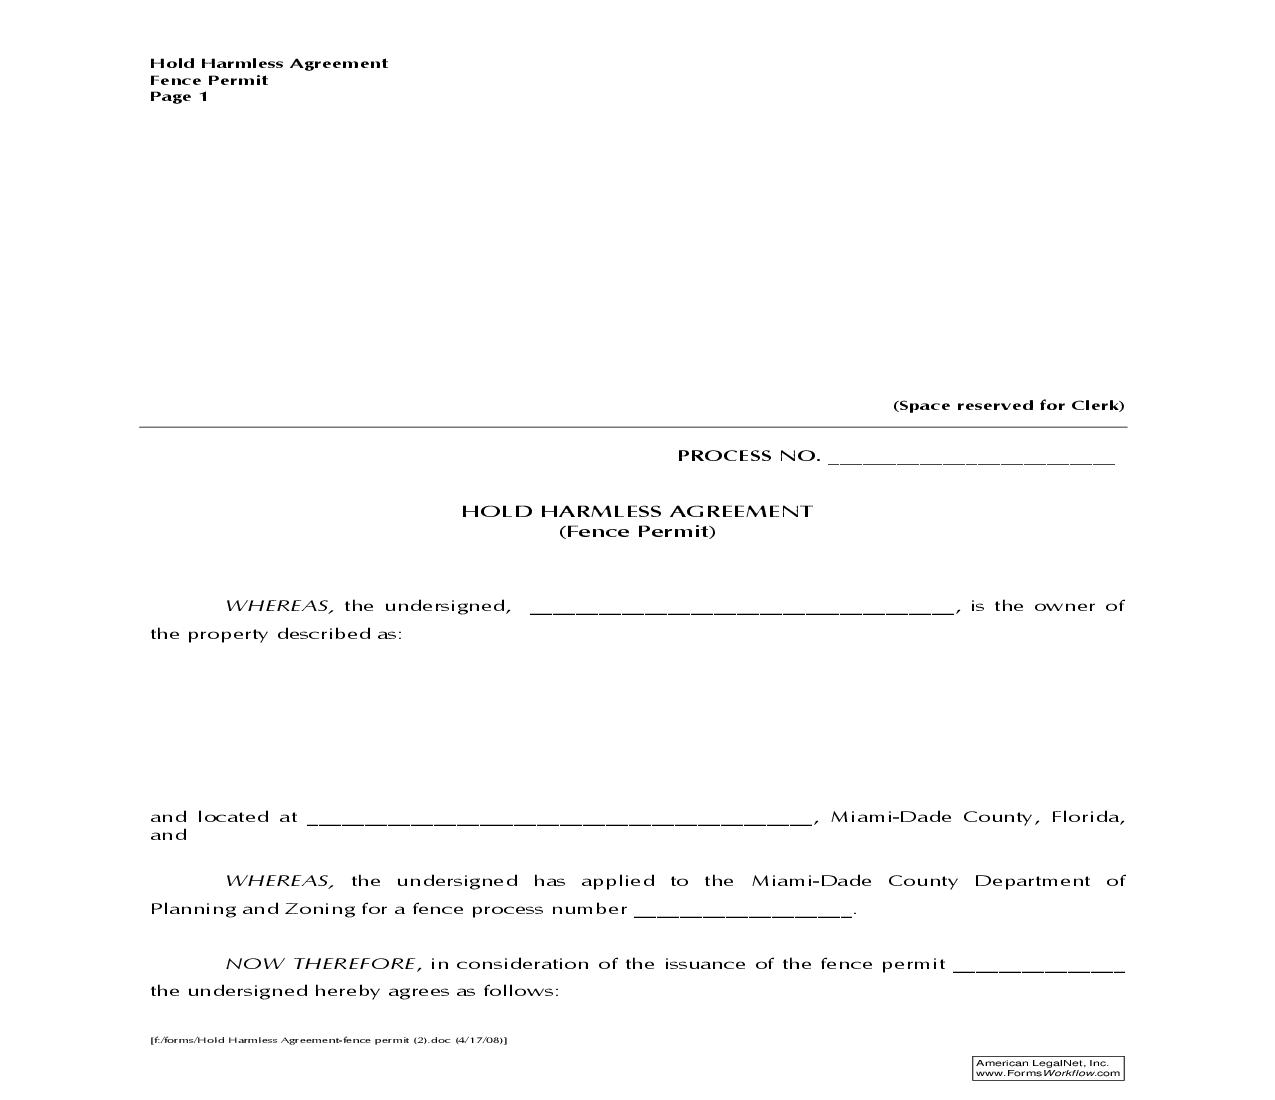 Hold Harmless Agreement (Fence Permit) | Pdf Fpdf Doc Docx | Florida